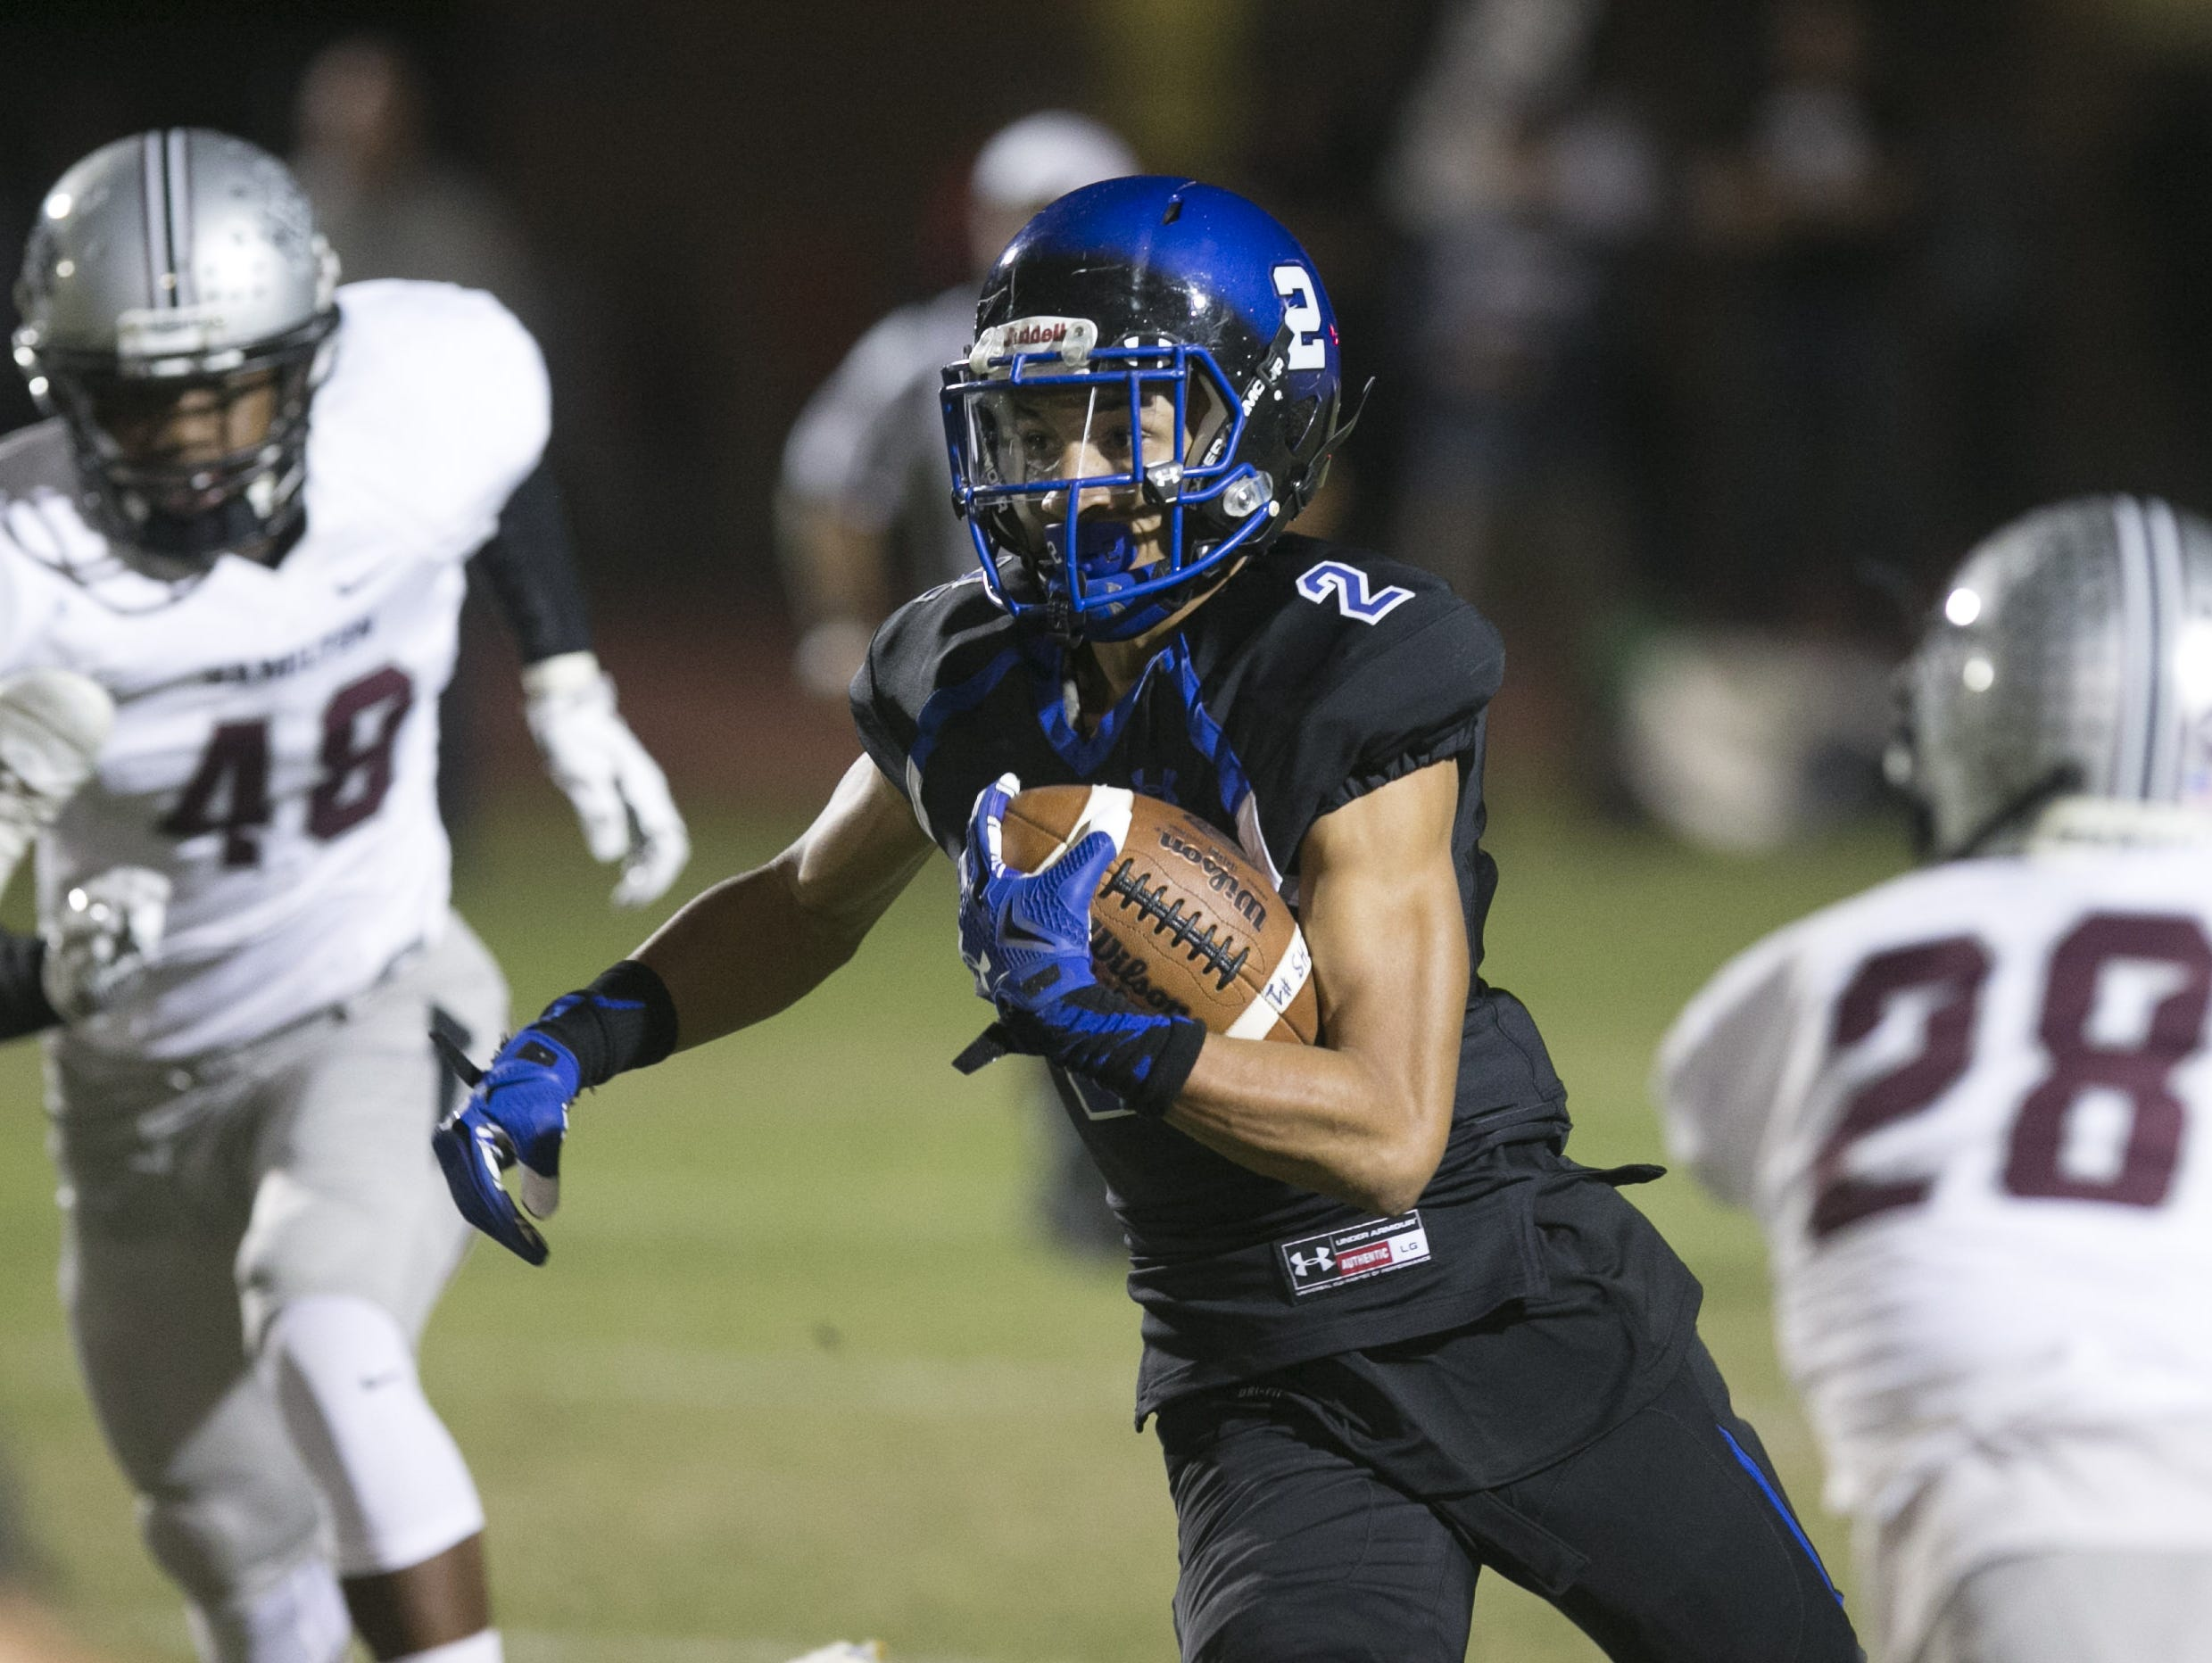 Chandler High running back Chase Lucas carries the ball against Hamilton High during the first half of the high school football game at Chandler High School in Chandler on Friday, October 30, 2015.